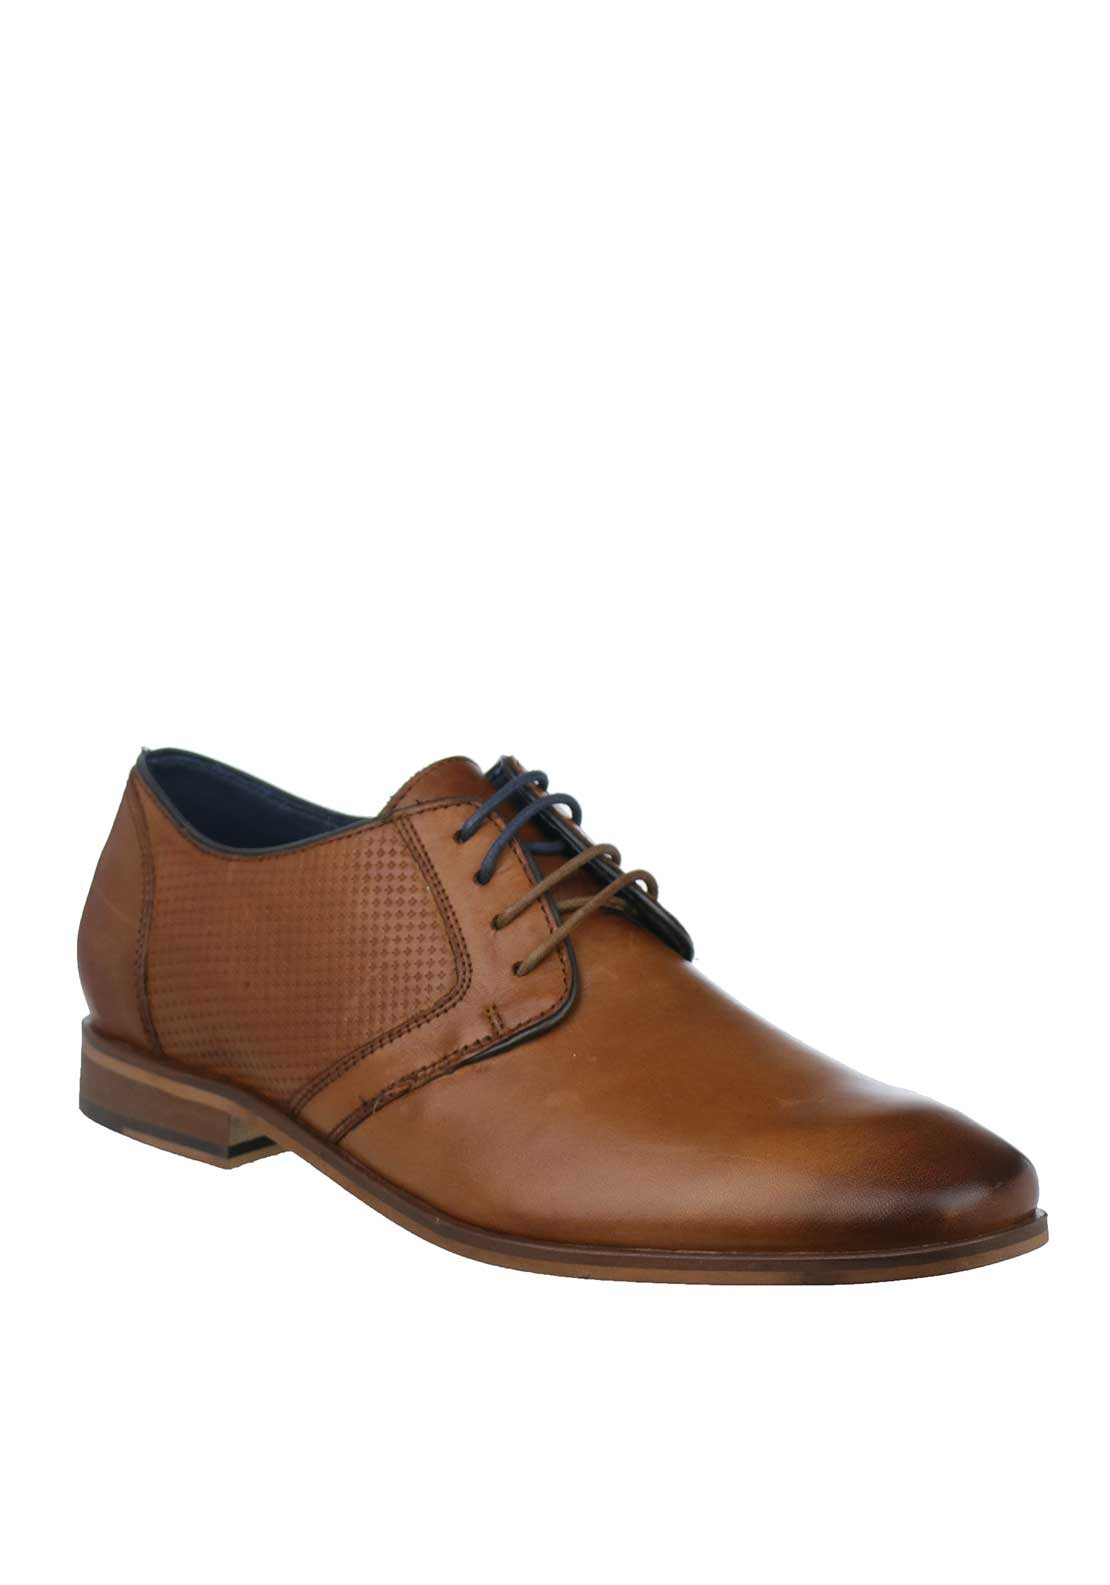 Paul O'Donnell by POD Atlanta Leather Shoes, Tan